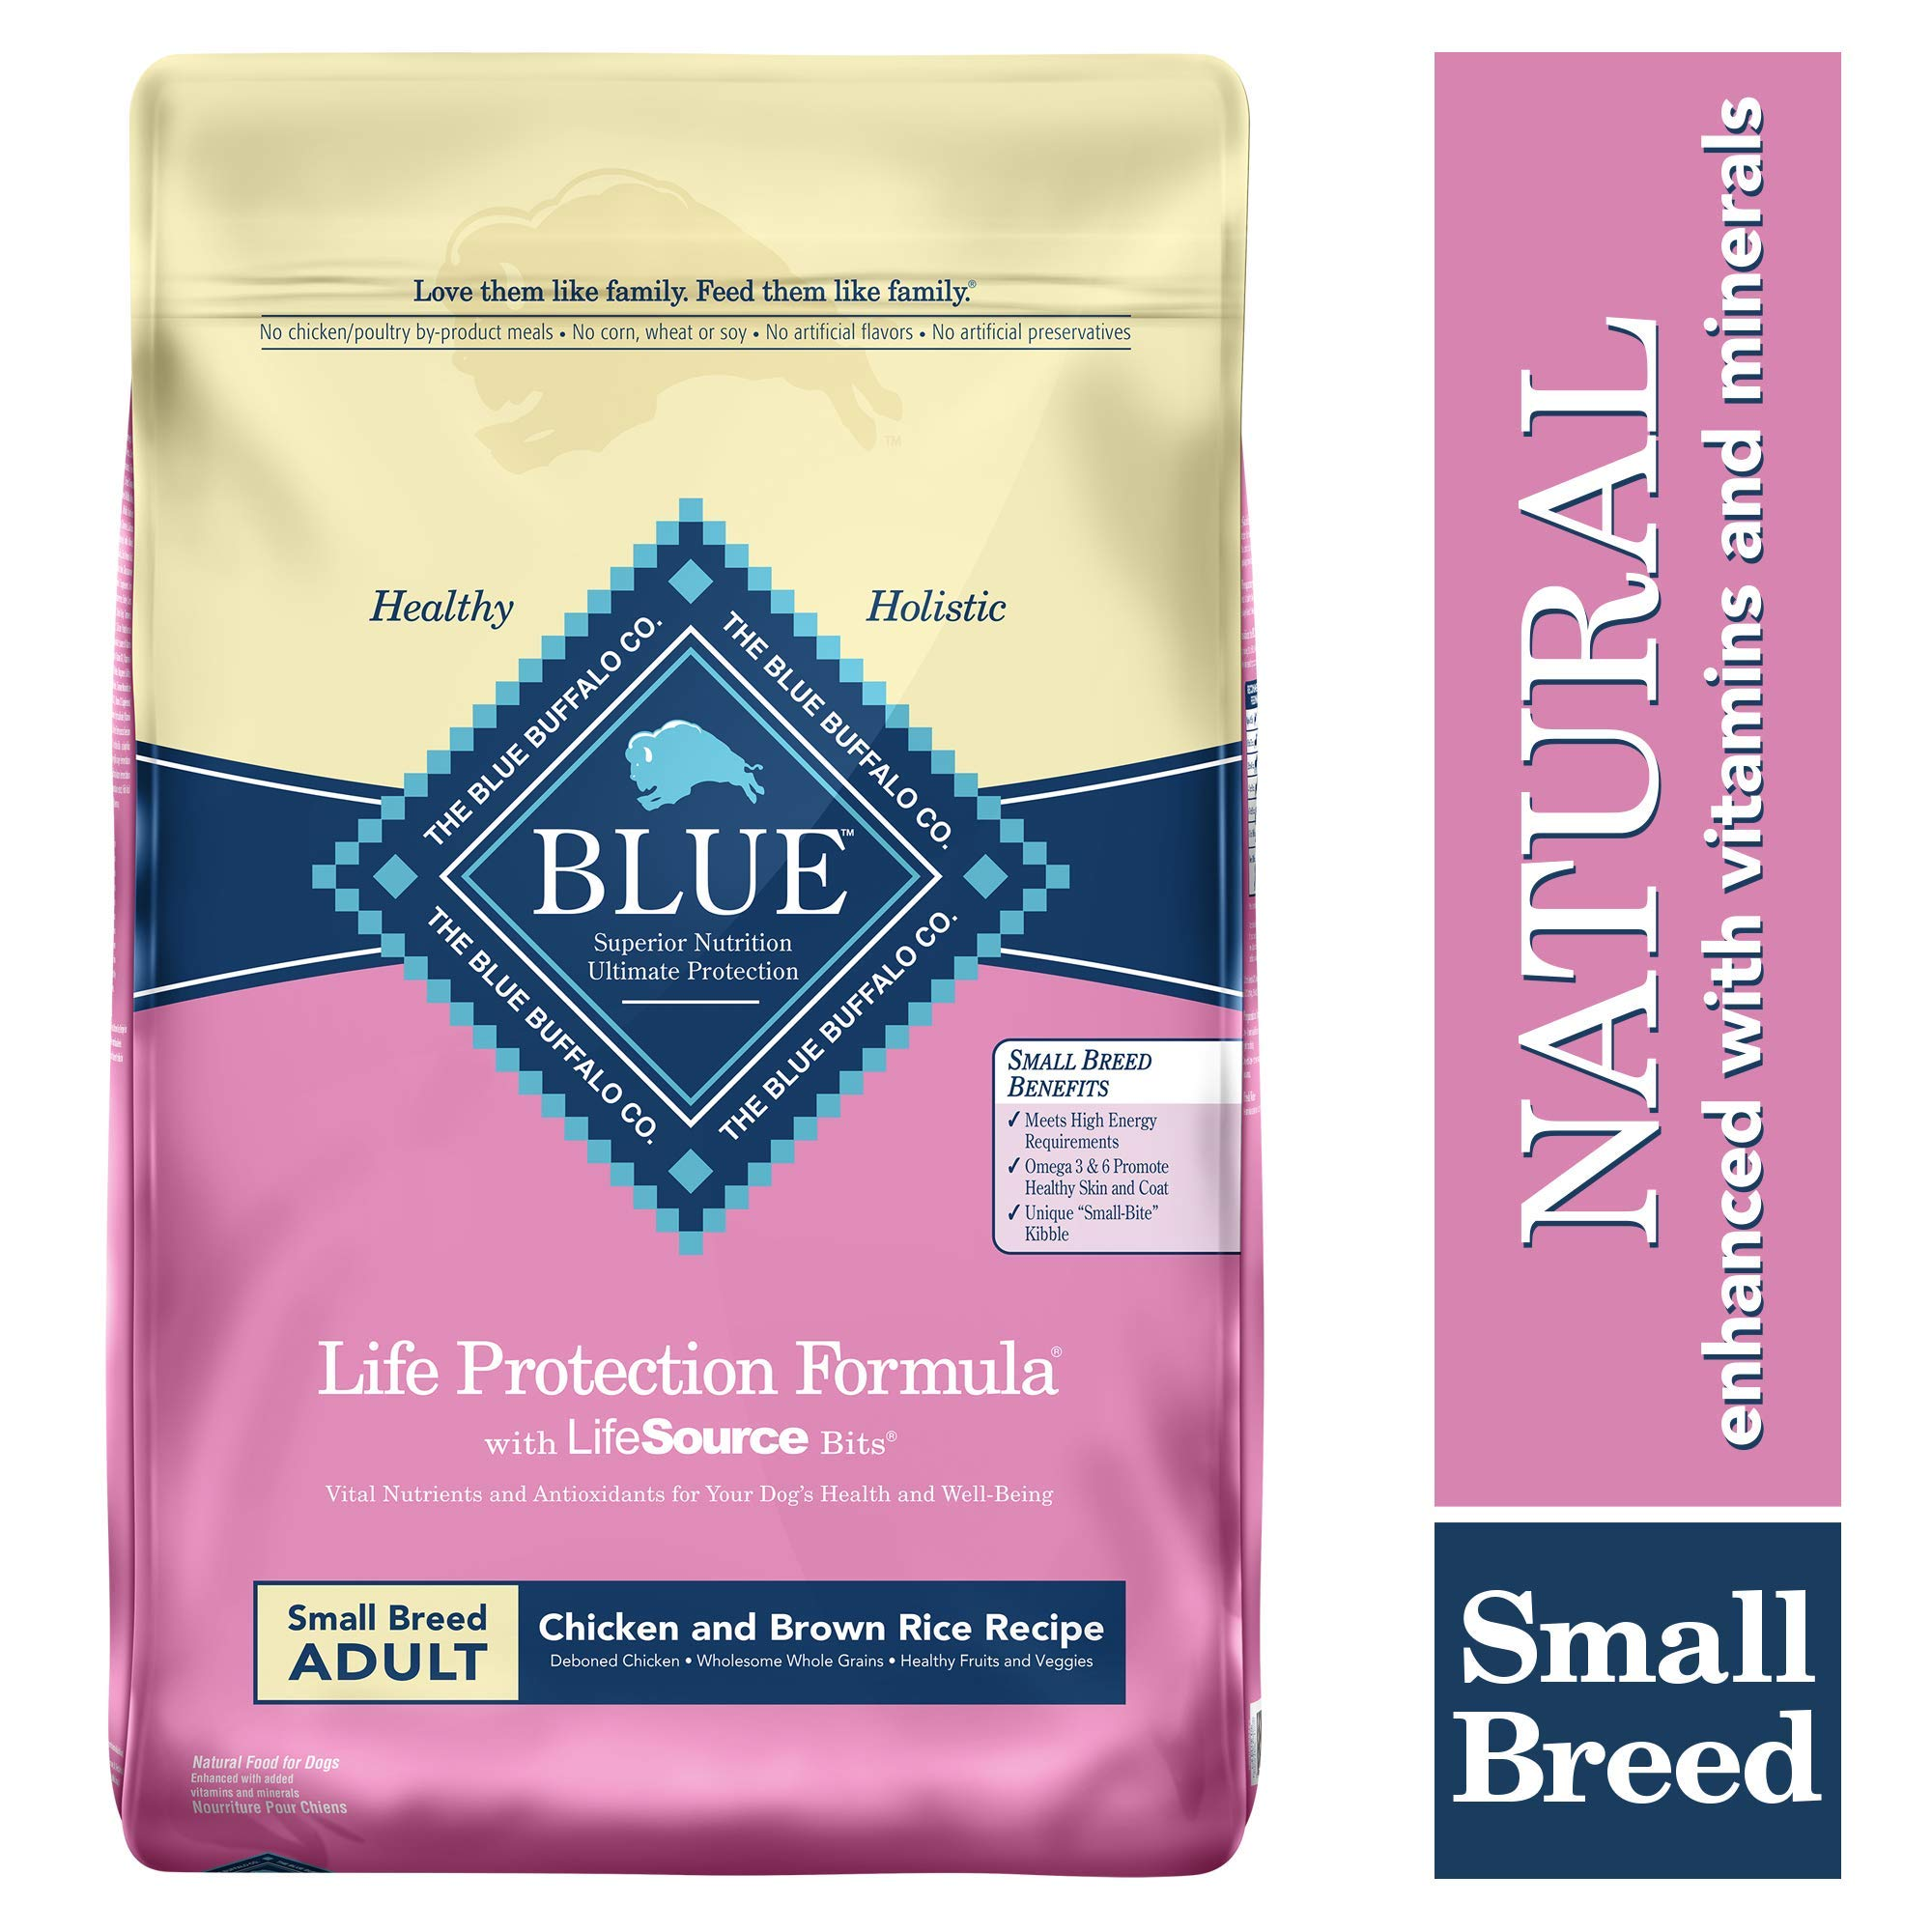 Blue Buffalo Life Protection Formula Small Breed Dog Food - Natural Dry Dog Food for Adult Dogs - Chicken and Brown Rice - 15 lb. Bag by Blue Buffalo